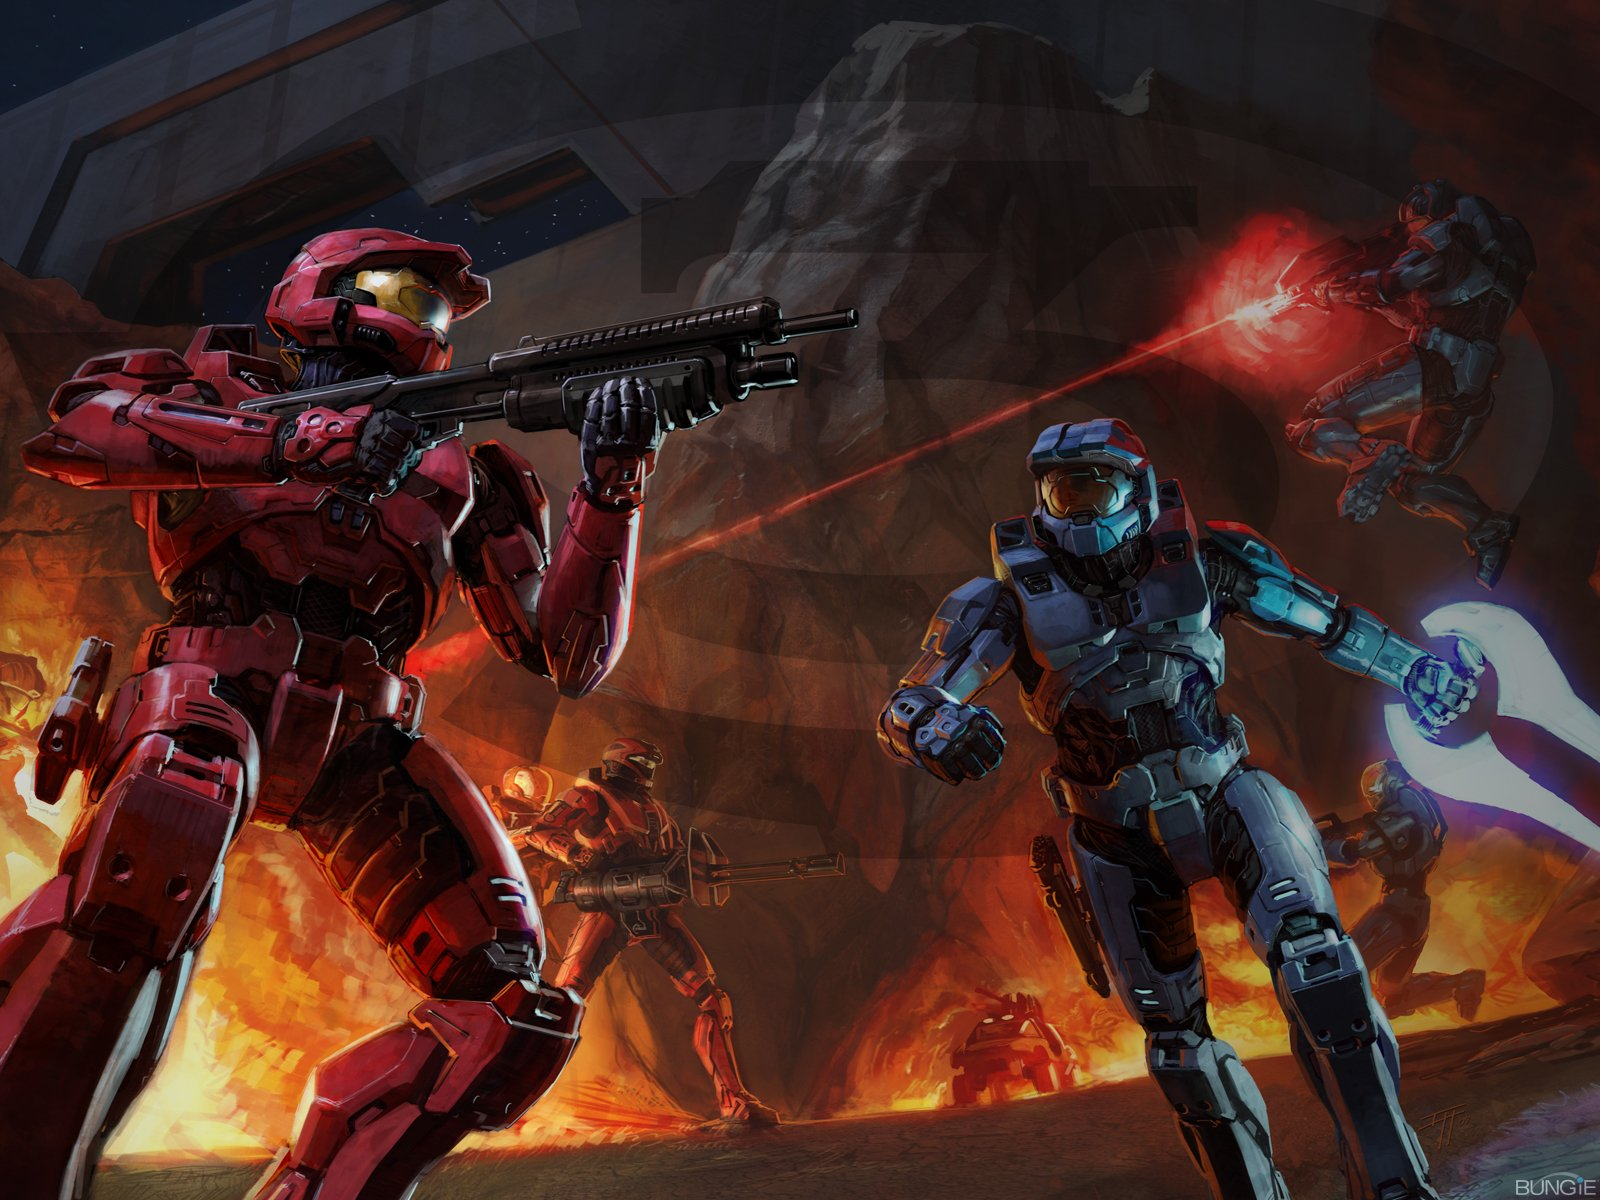 16 halo 3 hd wallpapers | background images - wallpaper abyss